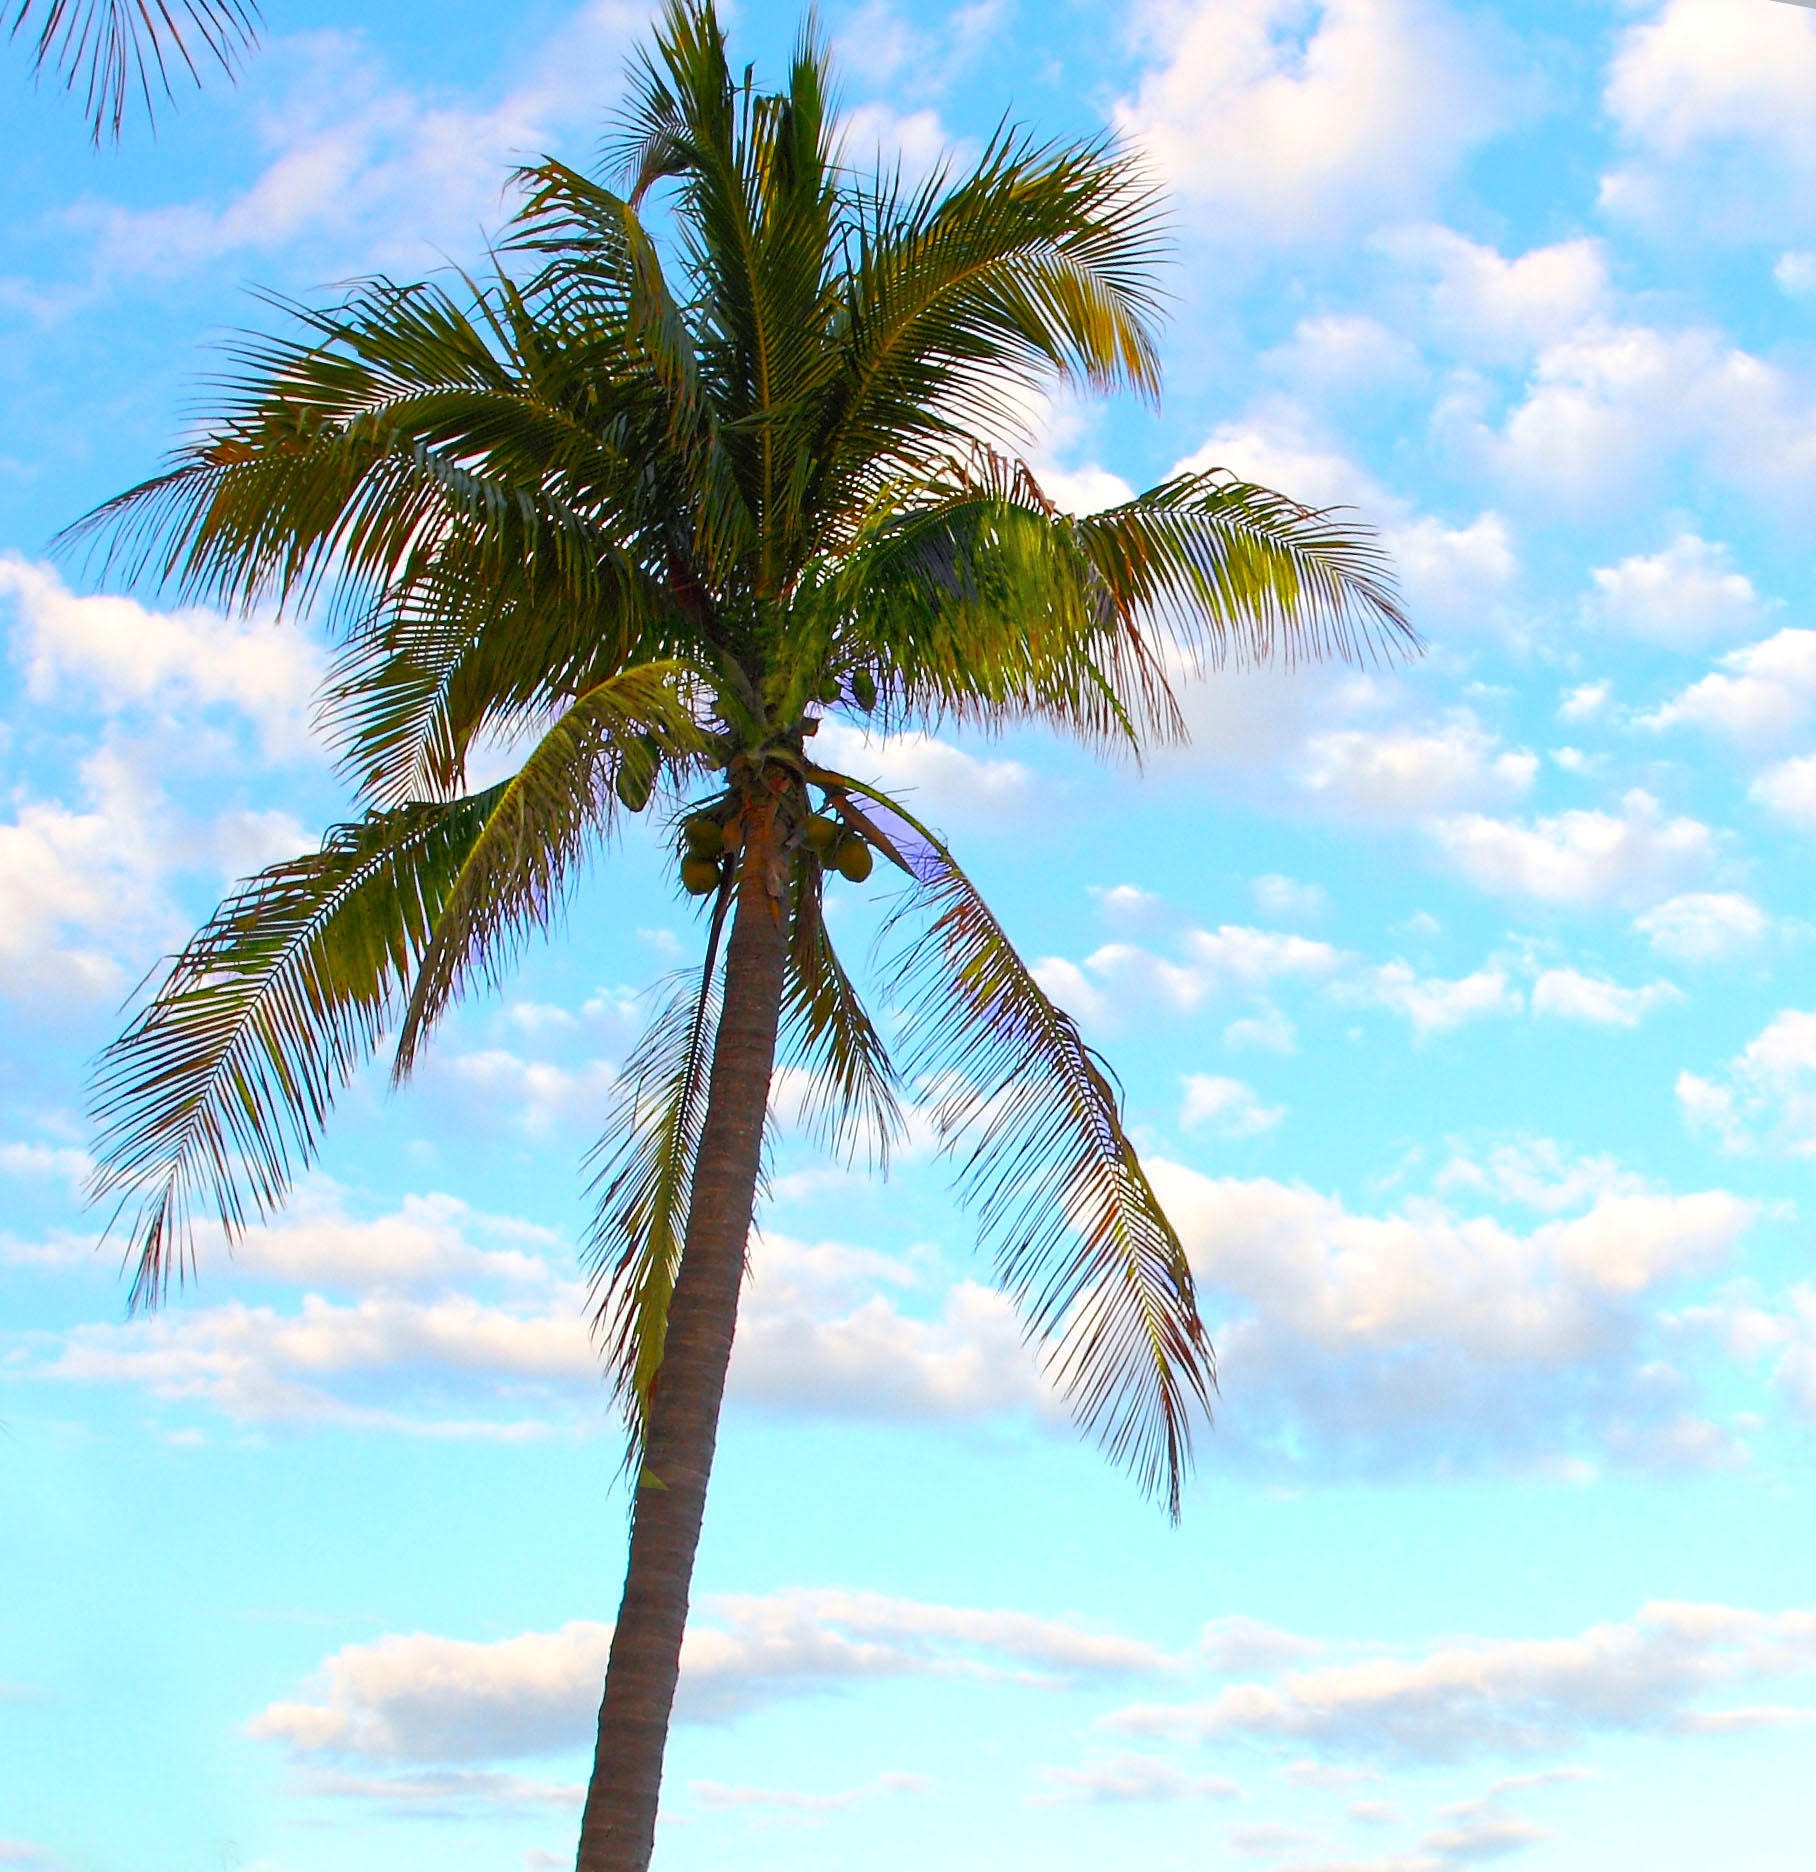 Palm Tree Beach: Luxury Florida Keys Resorts > Tranquility Bay